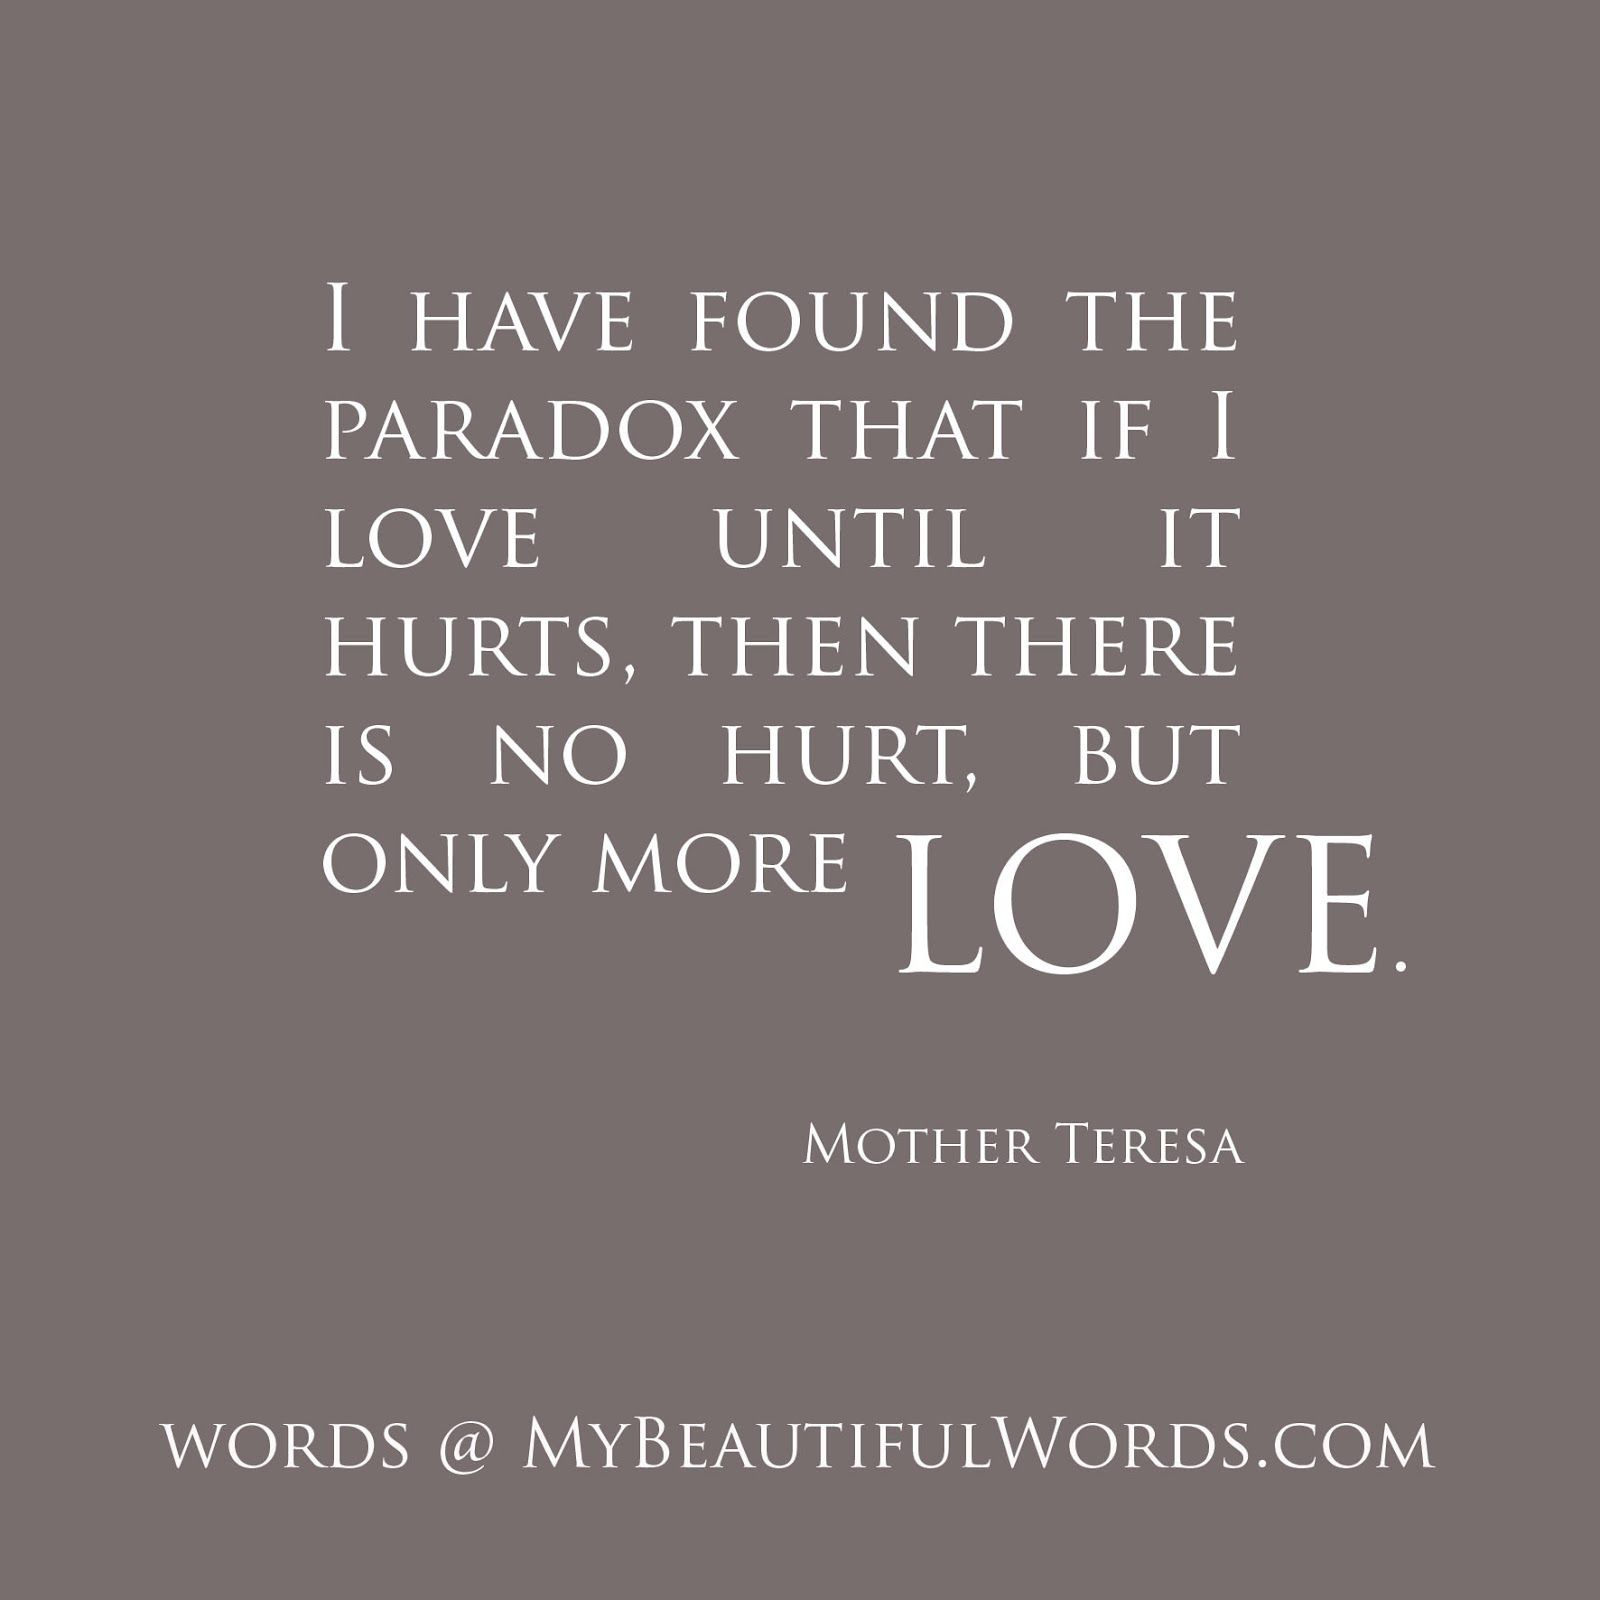 Mother Teresa Love Quotes I Have Found The Paradox That If You Love Until It Hurts There